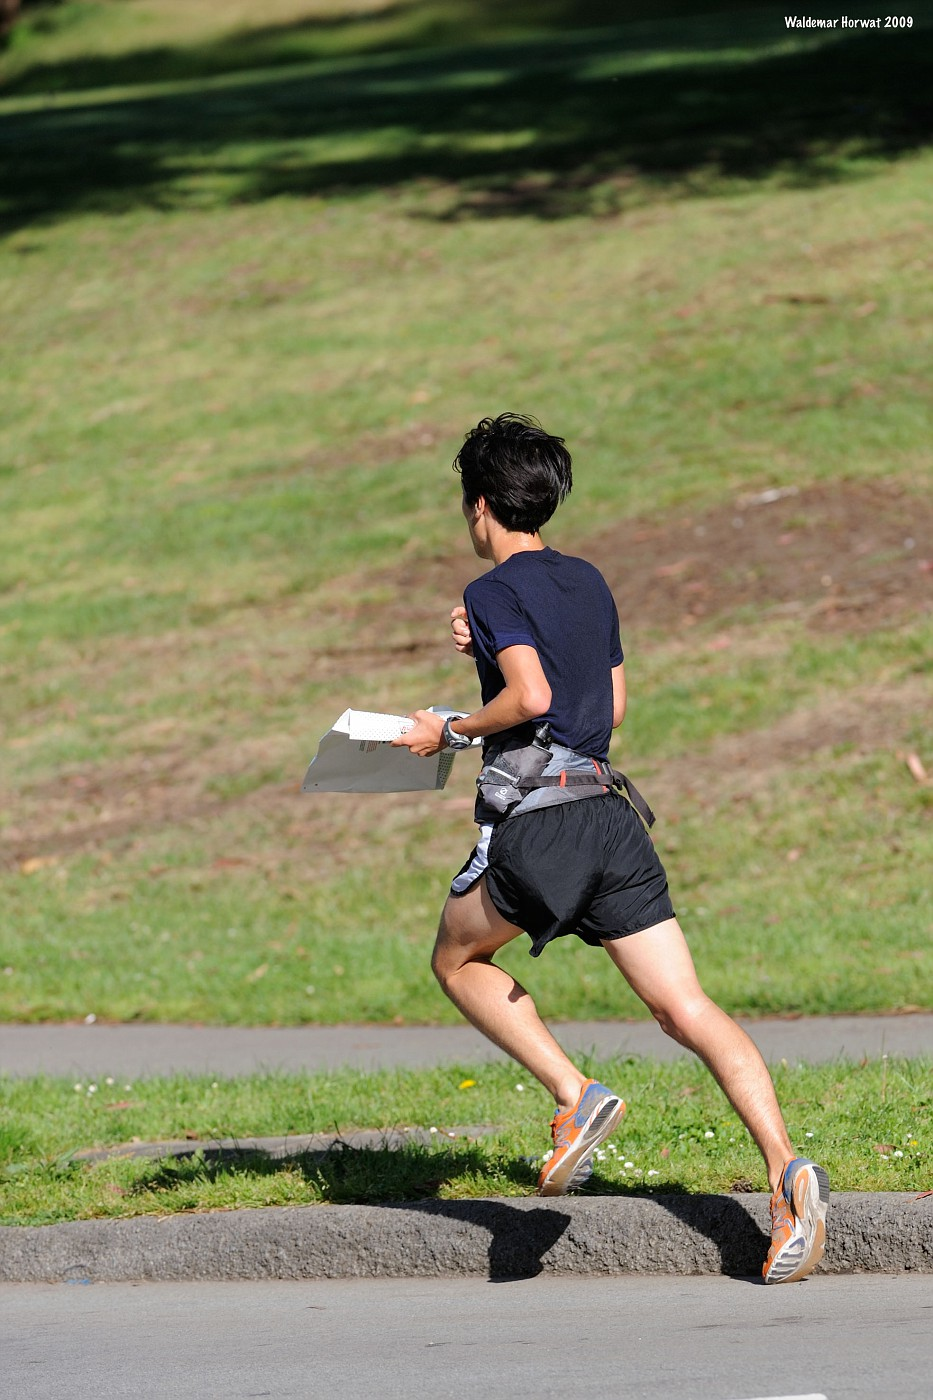 Pizza Delivery Runner